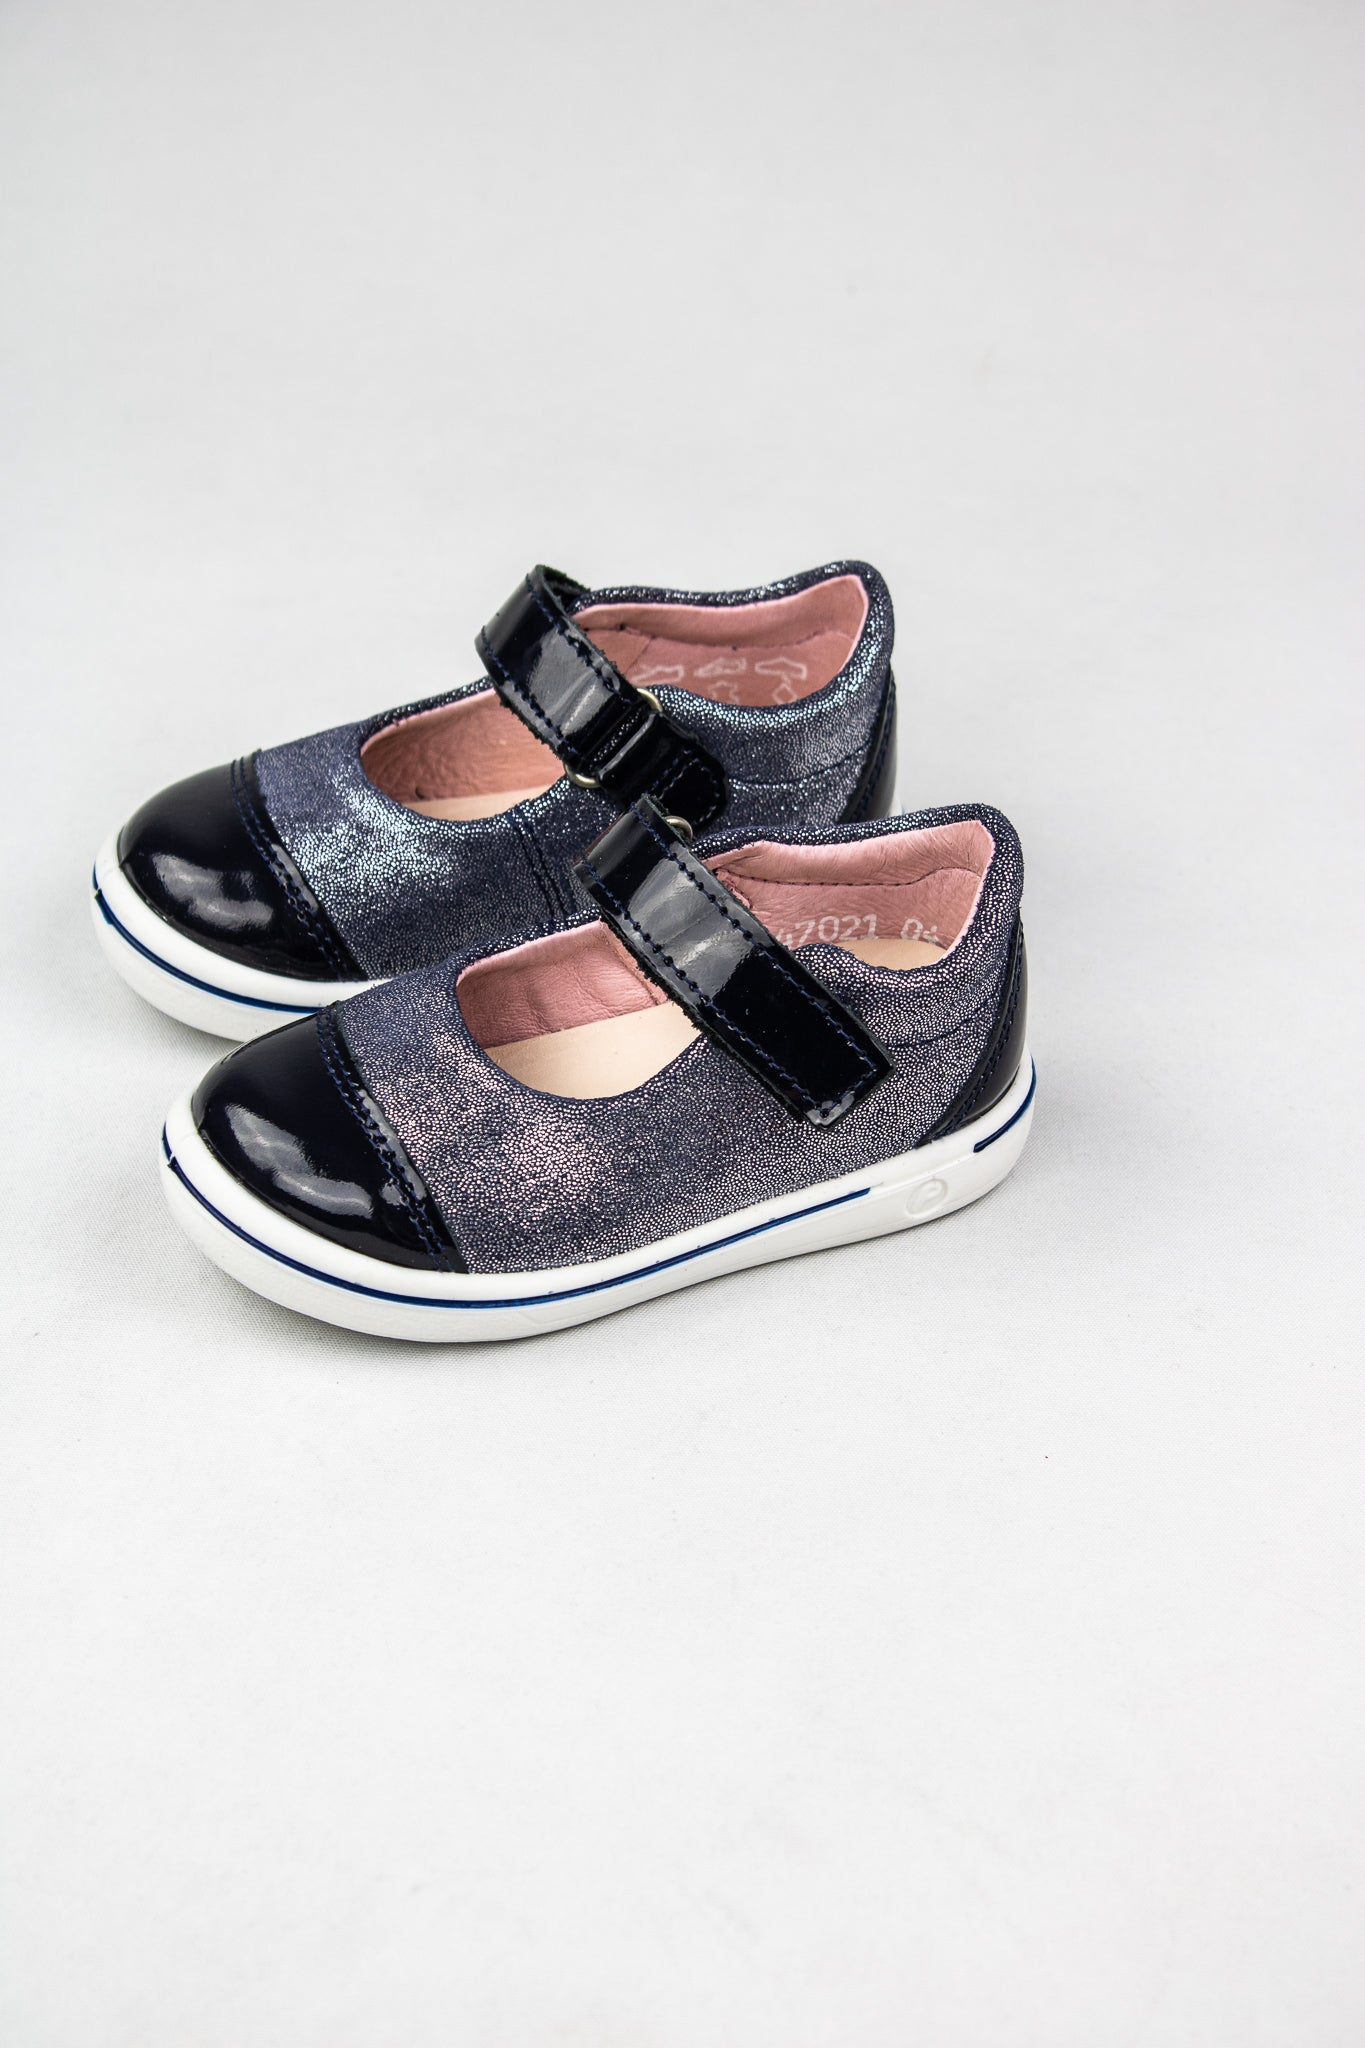 Ricosta Navy Girls Velcro Shoe 73 2622600 183 for sale online Ireland Corinne